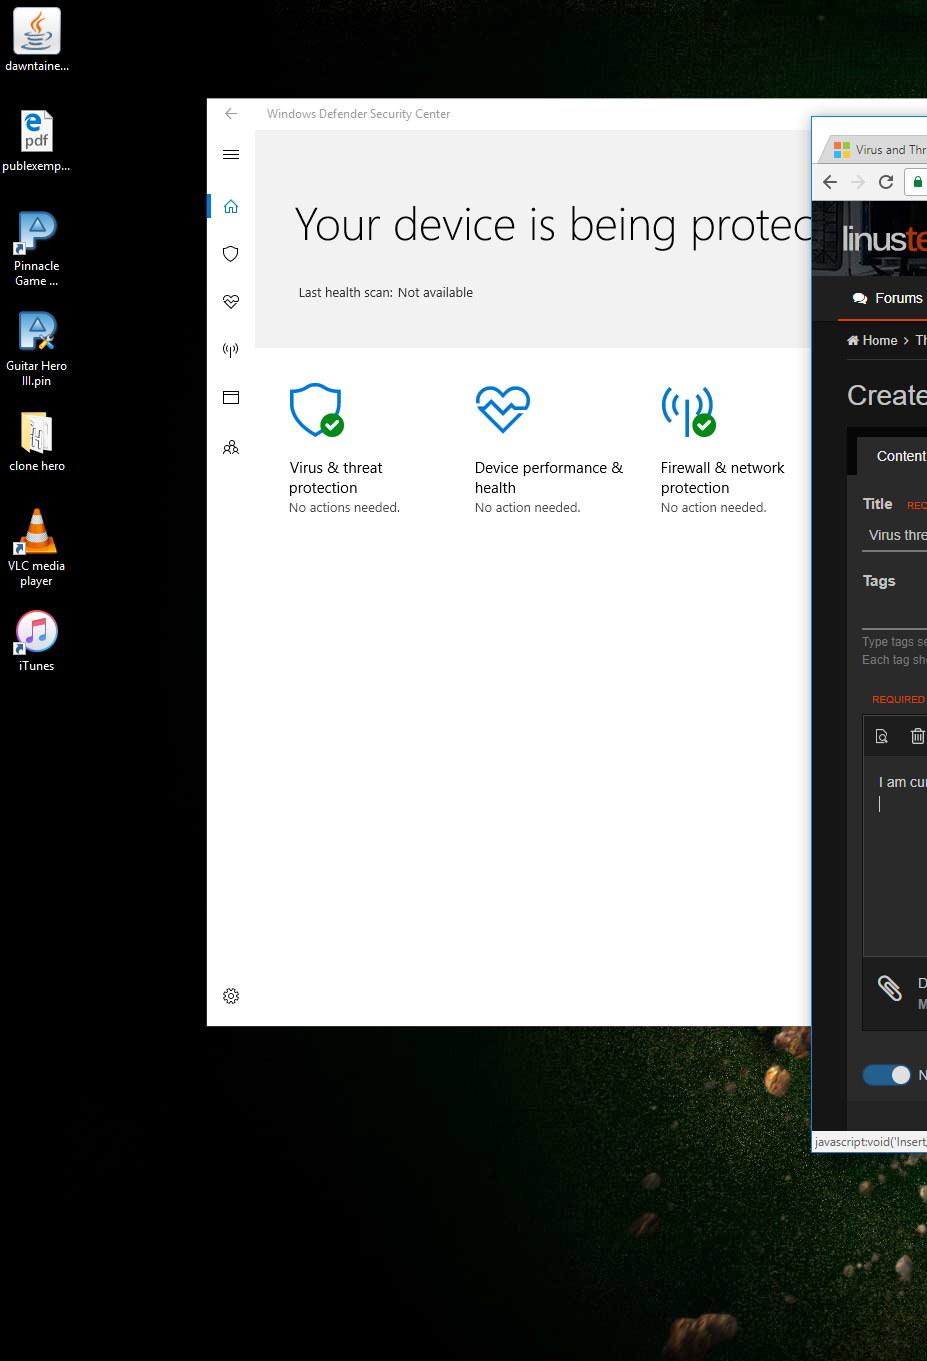 Virus threat and protection automatically turns off